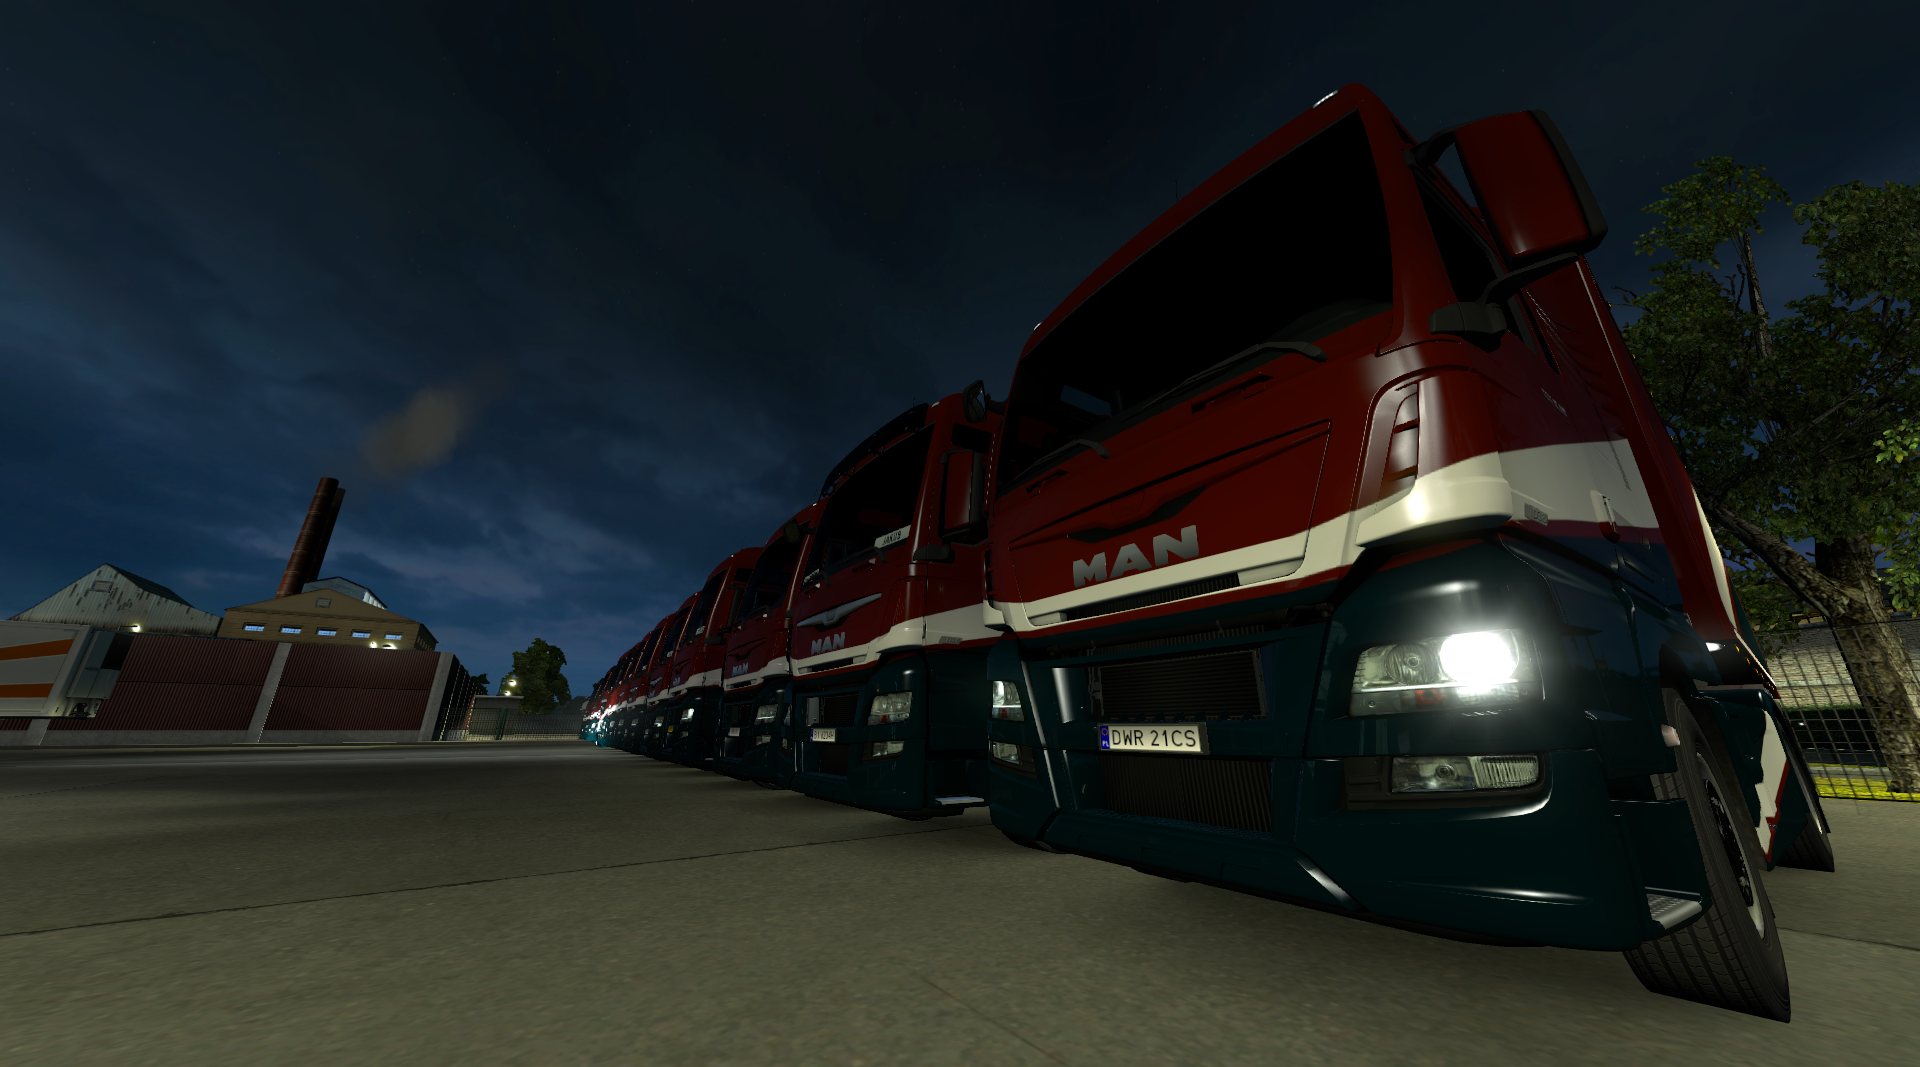 ets2_20190316_194225_00.png